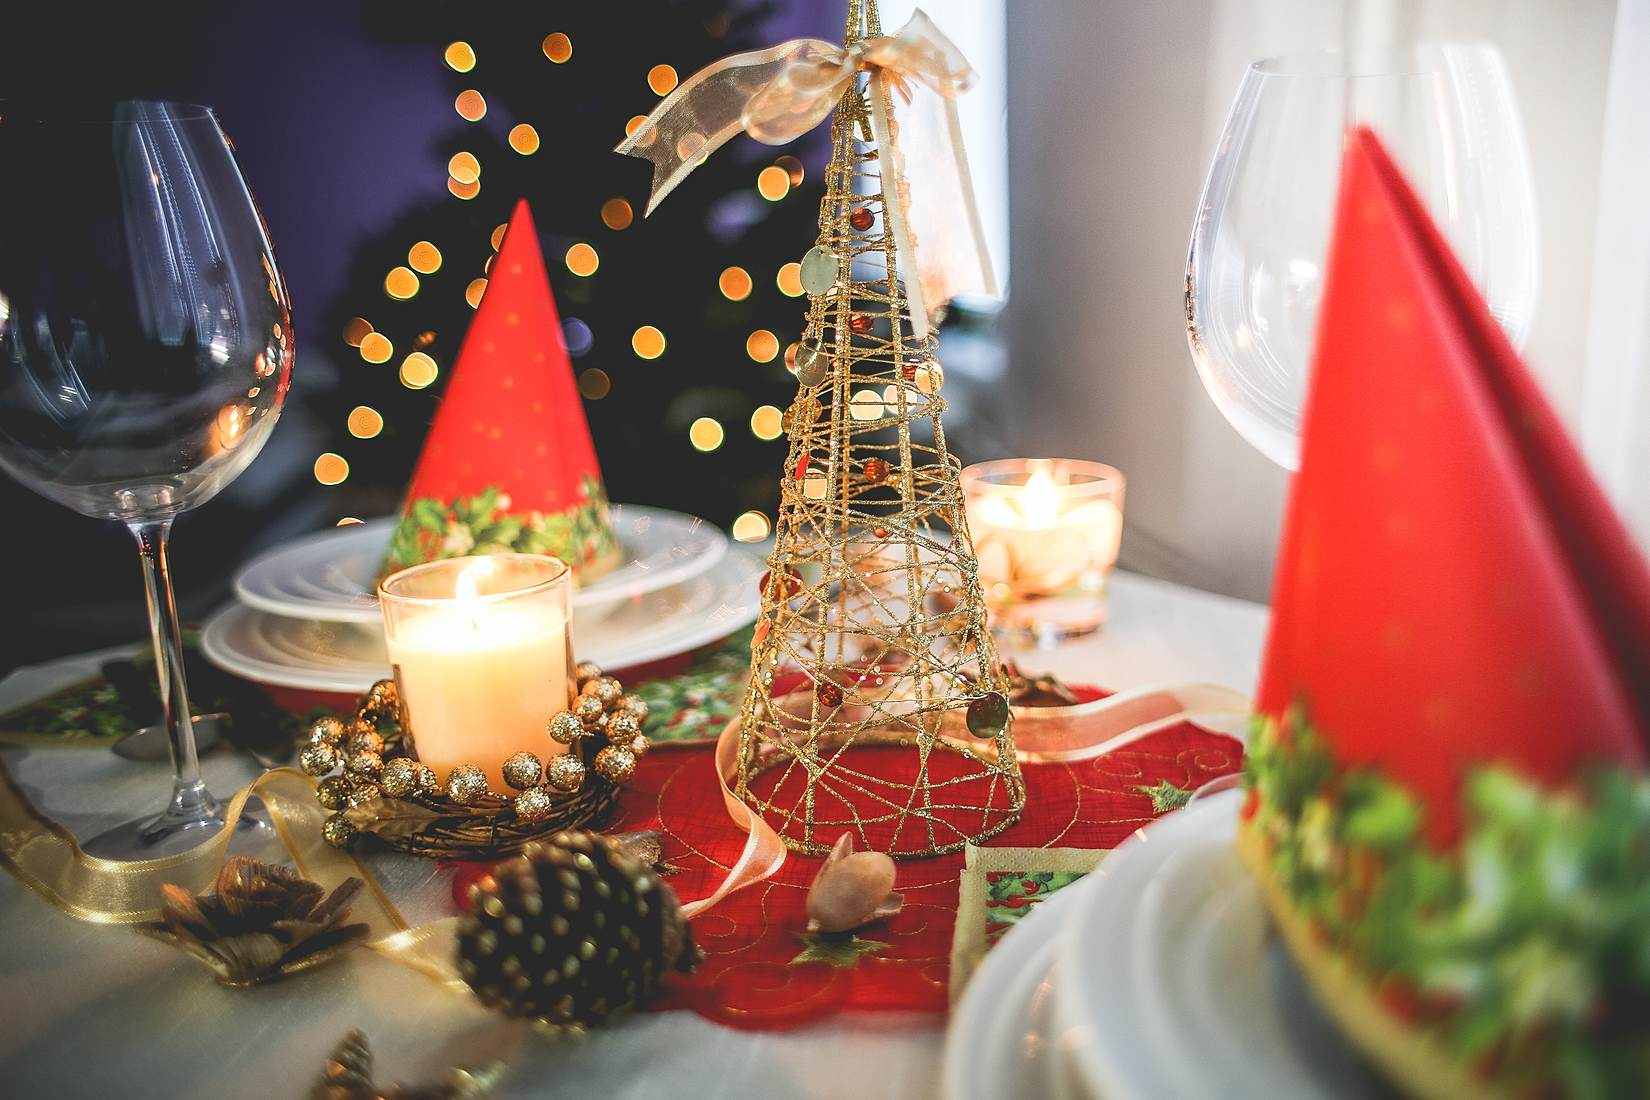 10 Tips on Finding Christmas Decorations for a Bargain